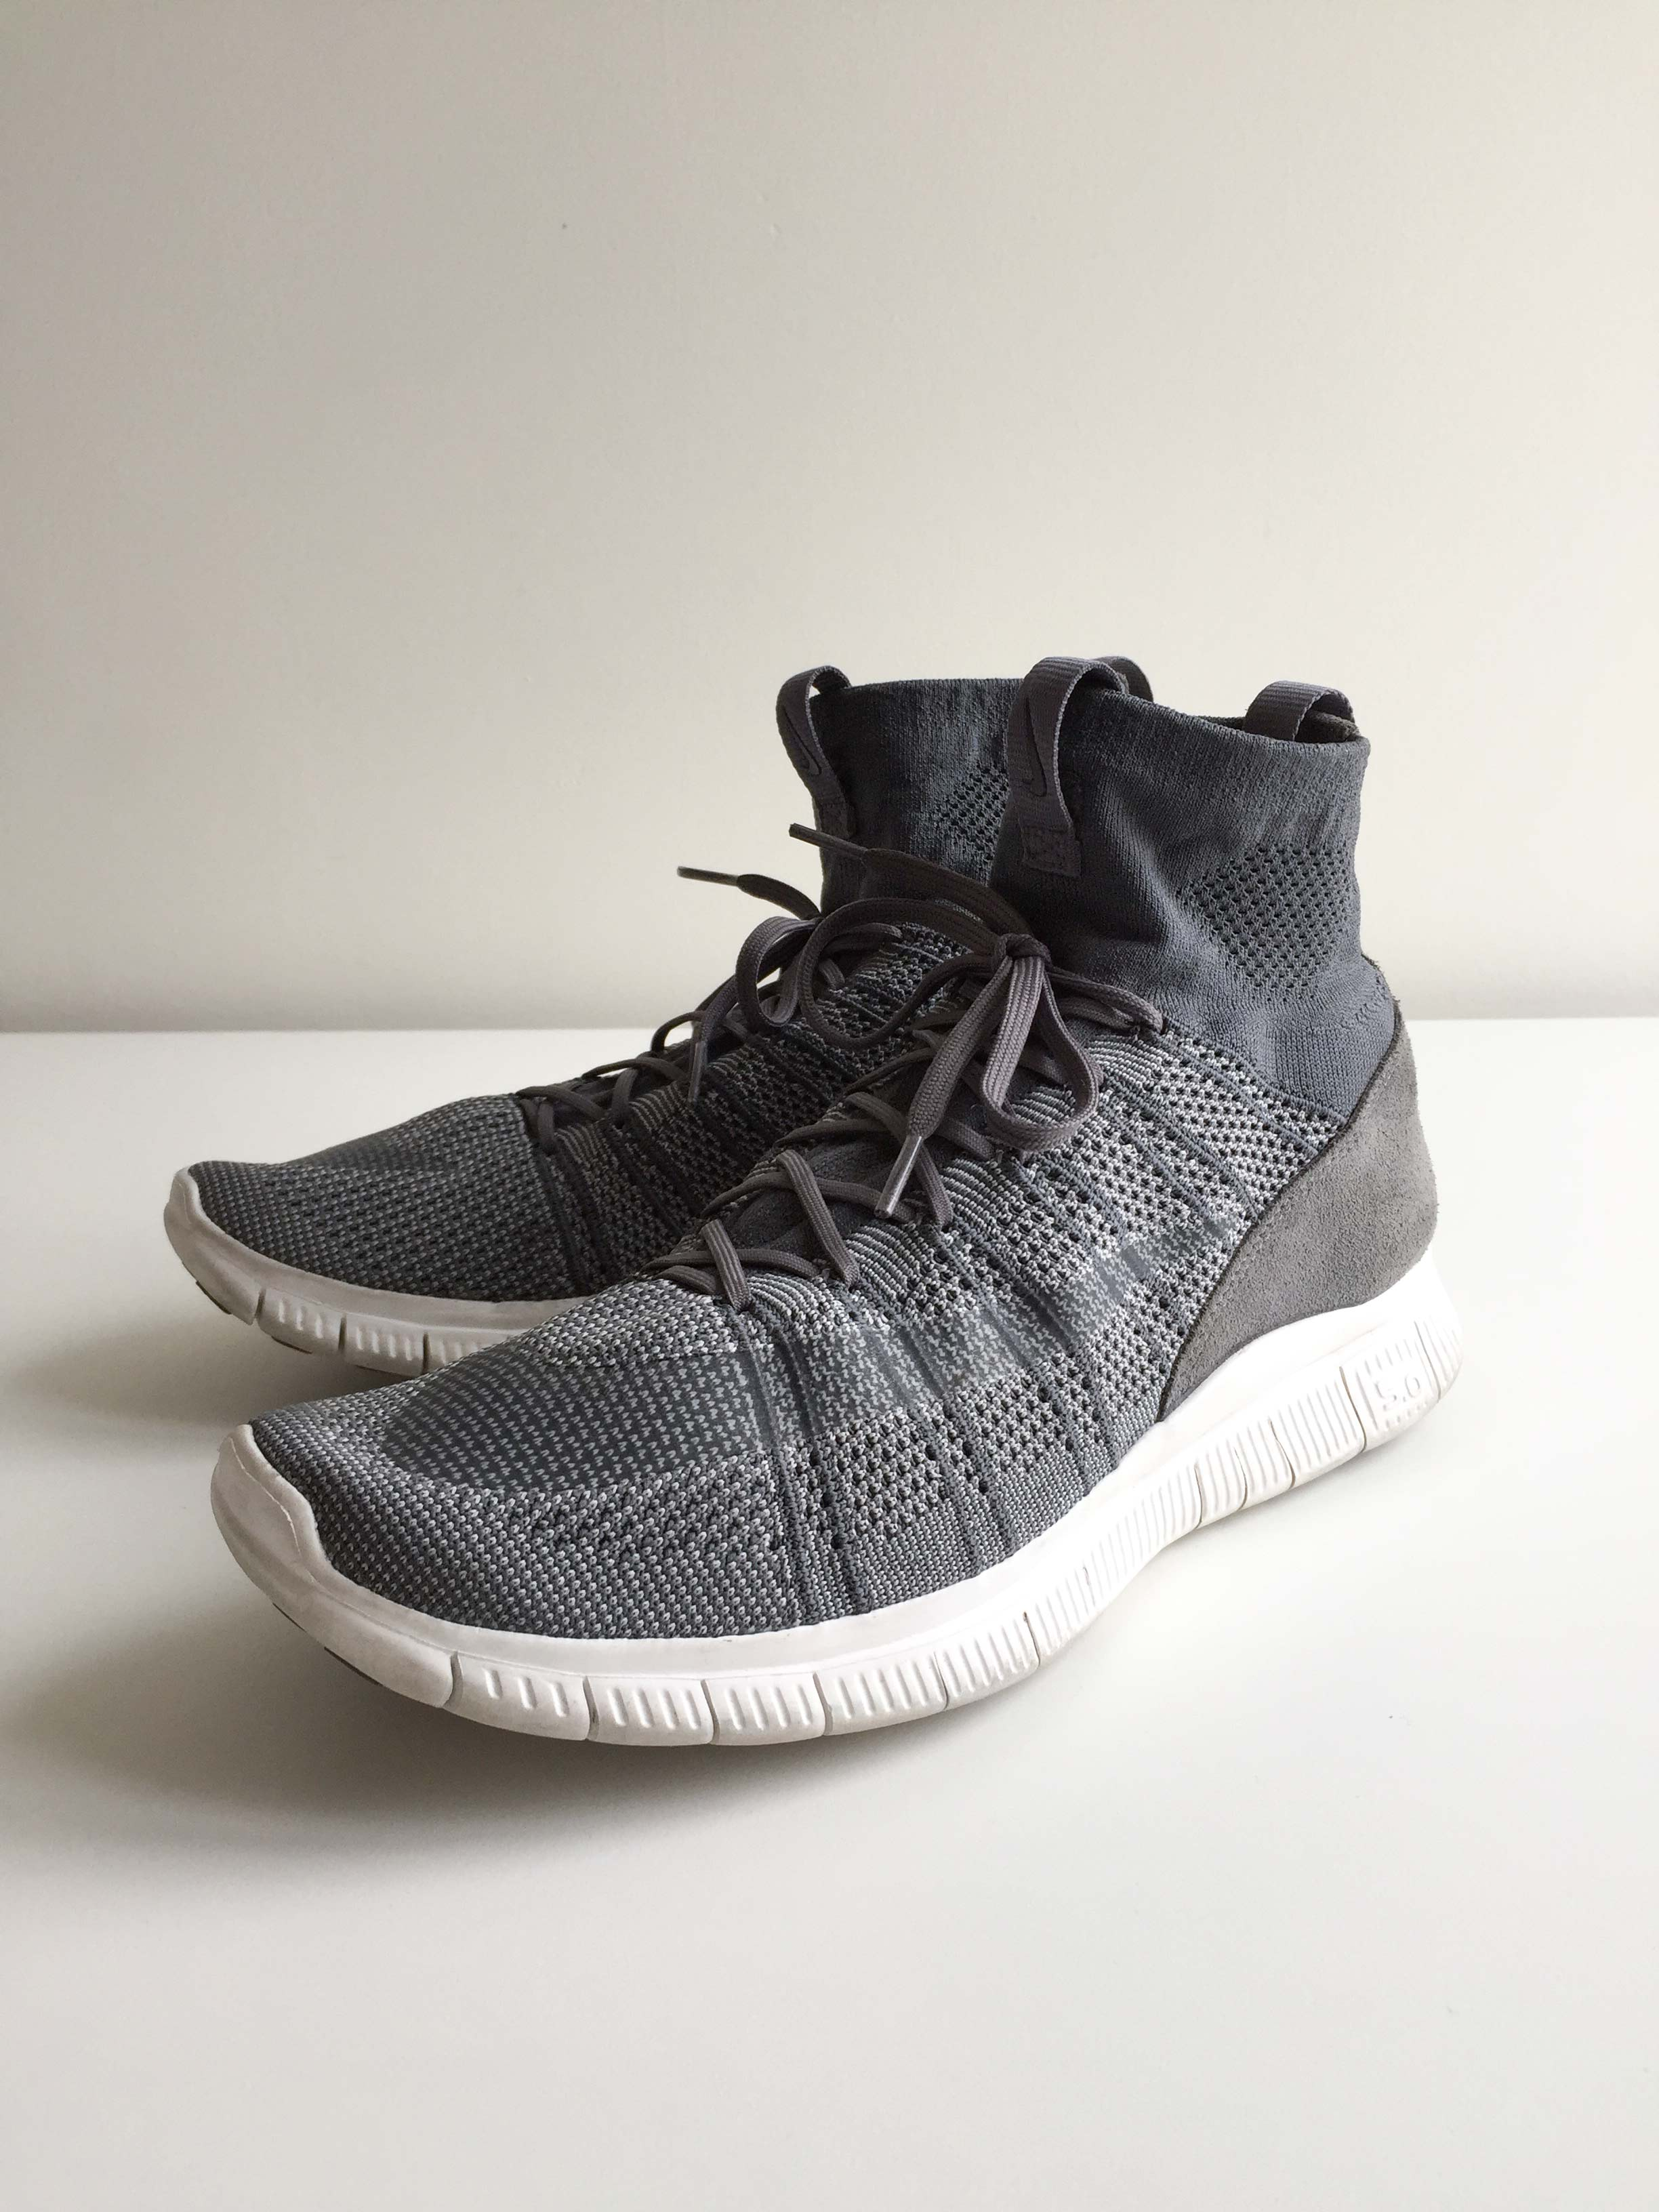 on sale eae30 872da Nike ×. FREE FLYKNIT MERCURIAL SP DARK WOLF GREY